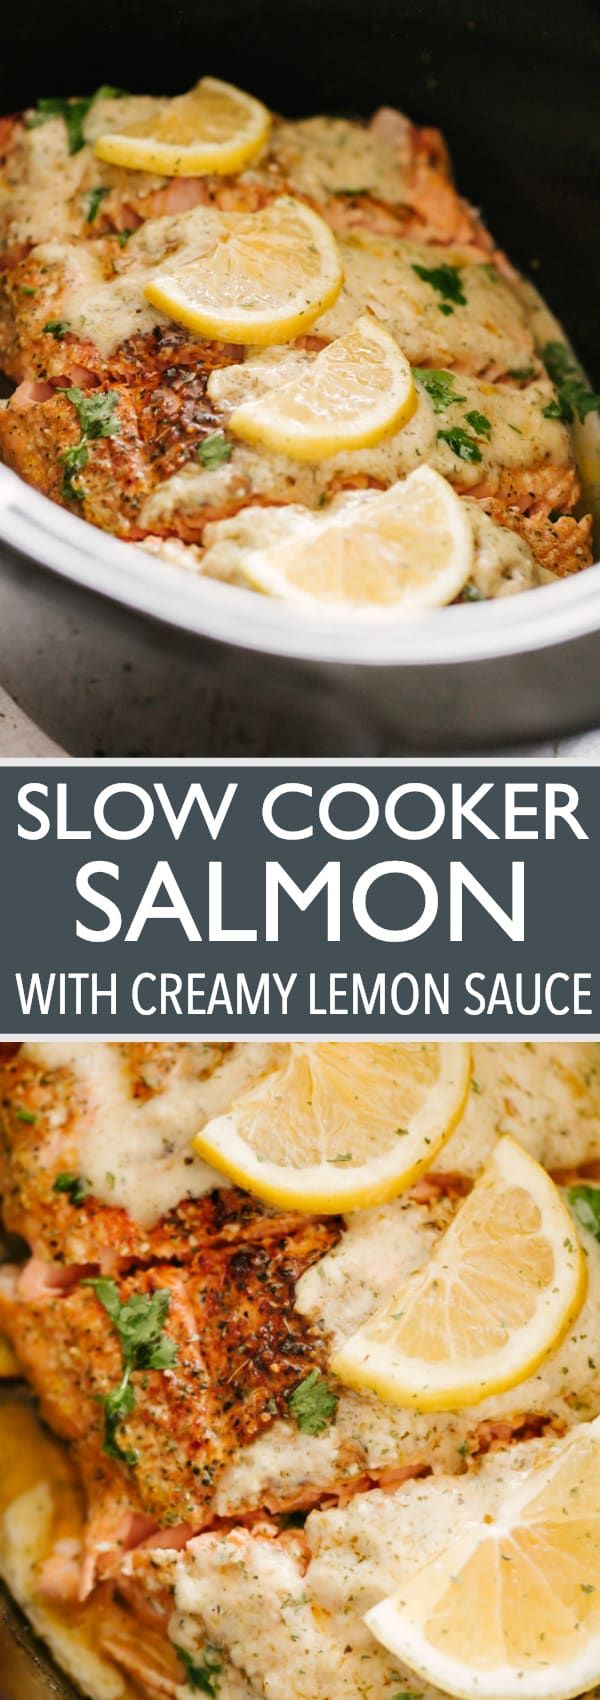 This Slow Cooker Salmon recipe yields tender, flaky fish, topped with a luscious creamy lemon sauce. Easy to put together, super flavorful, and cooked to a juicy perfection right in your slow cooker. #slowcoookersalmon #salmonrecipes #fish #seafood #creamsauce via @diethood #crockpotrecipes